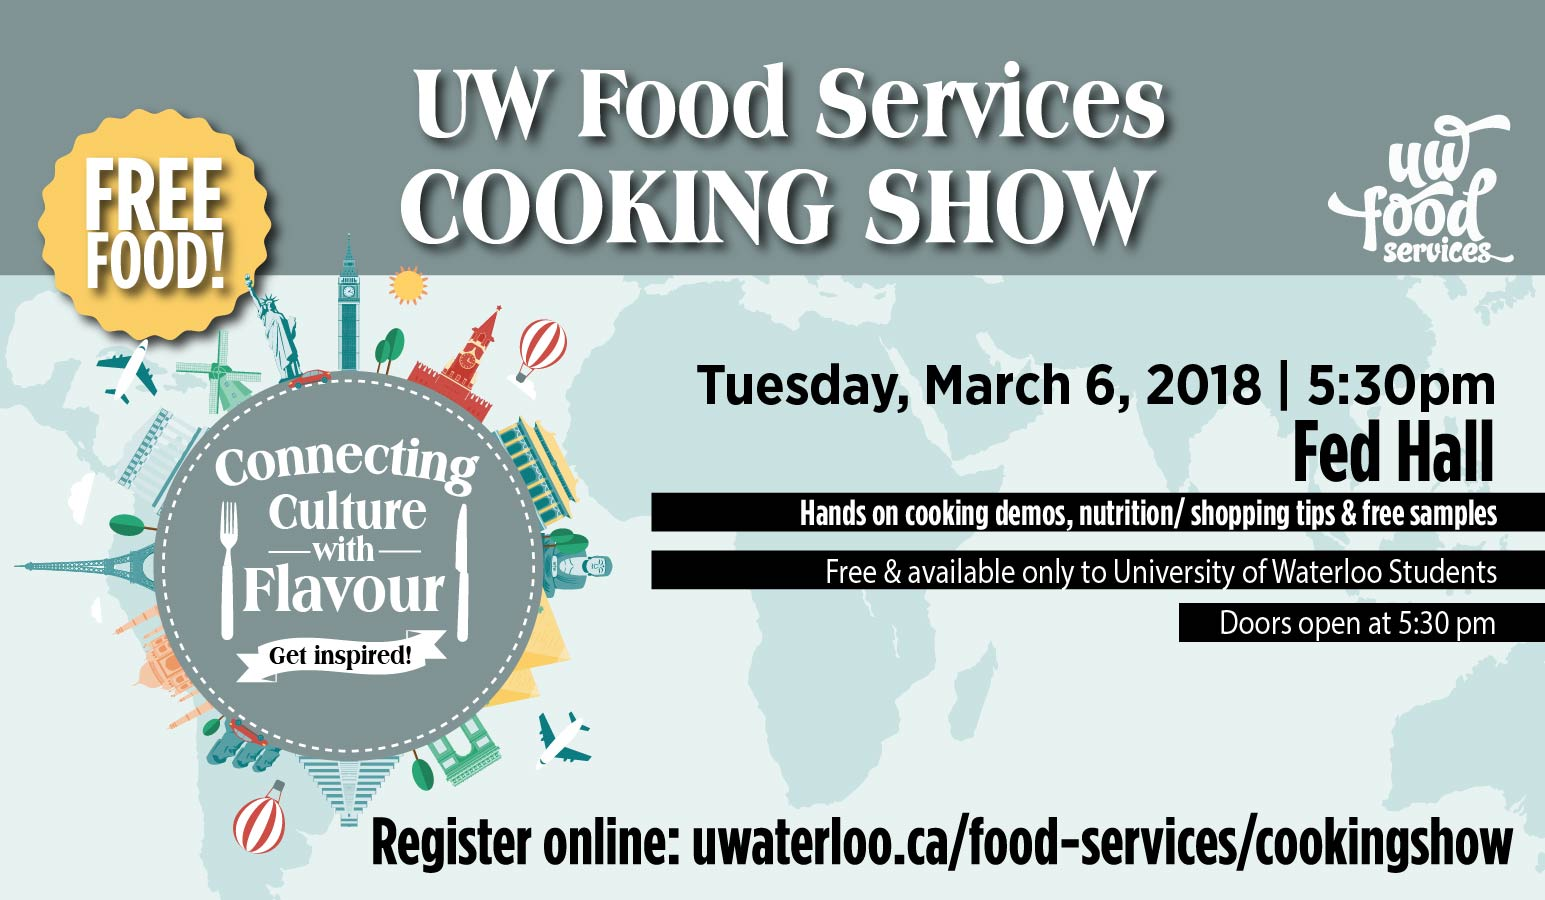 UW Food Services Cooking Show - Connecting culture with flavour